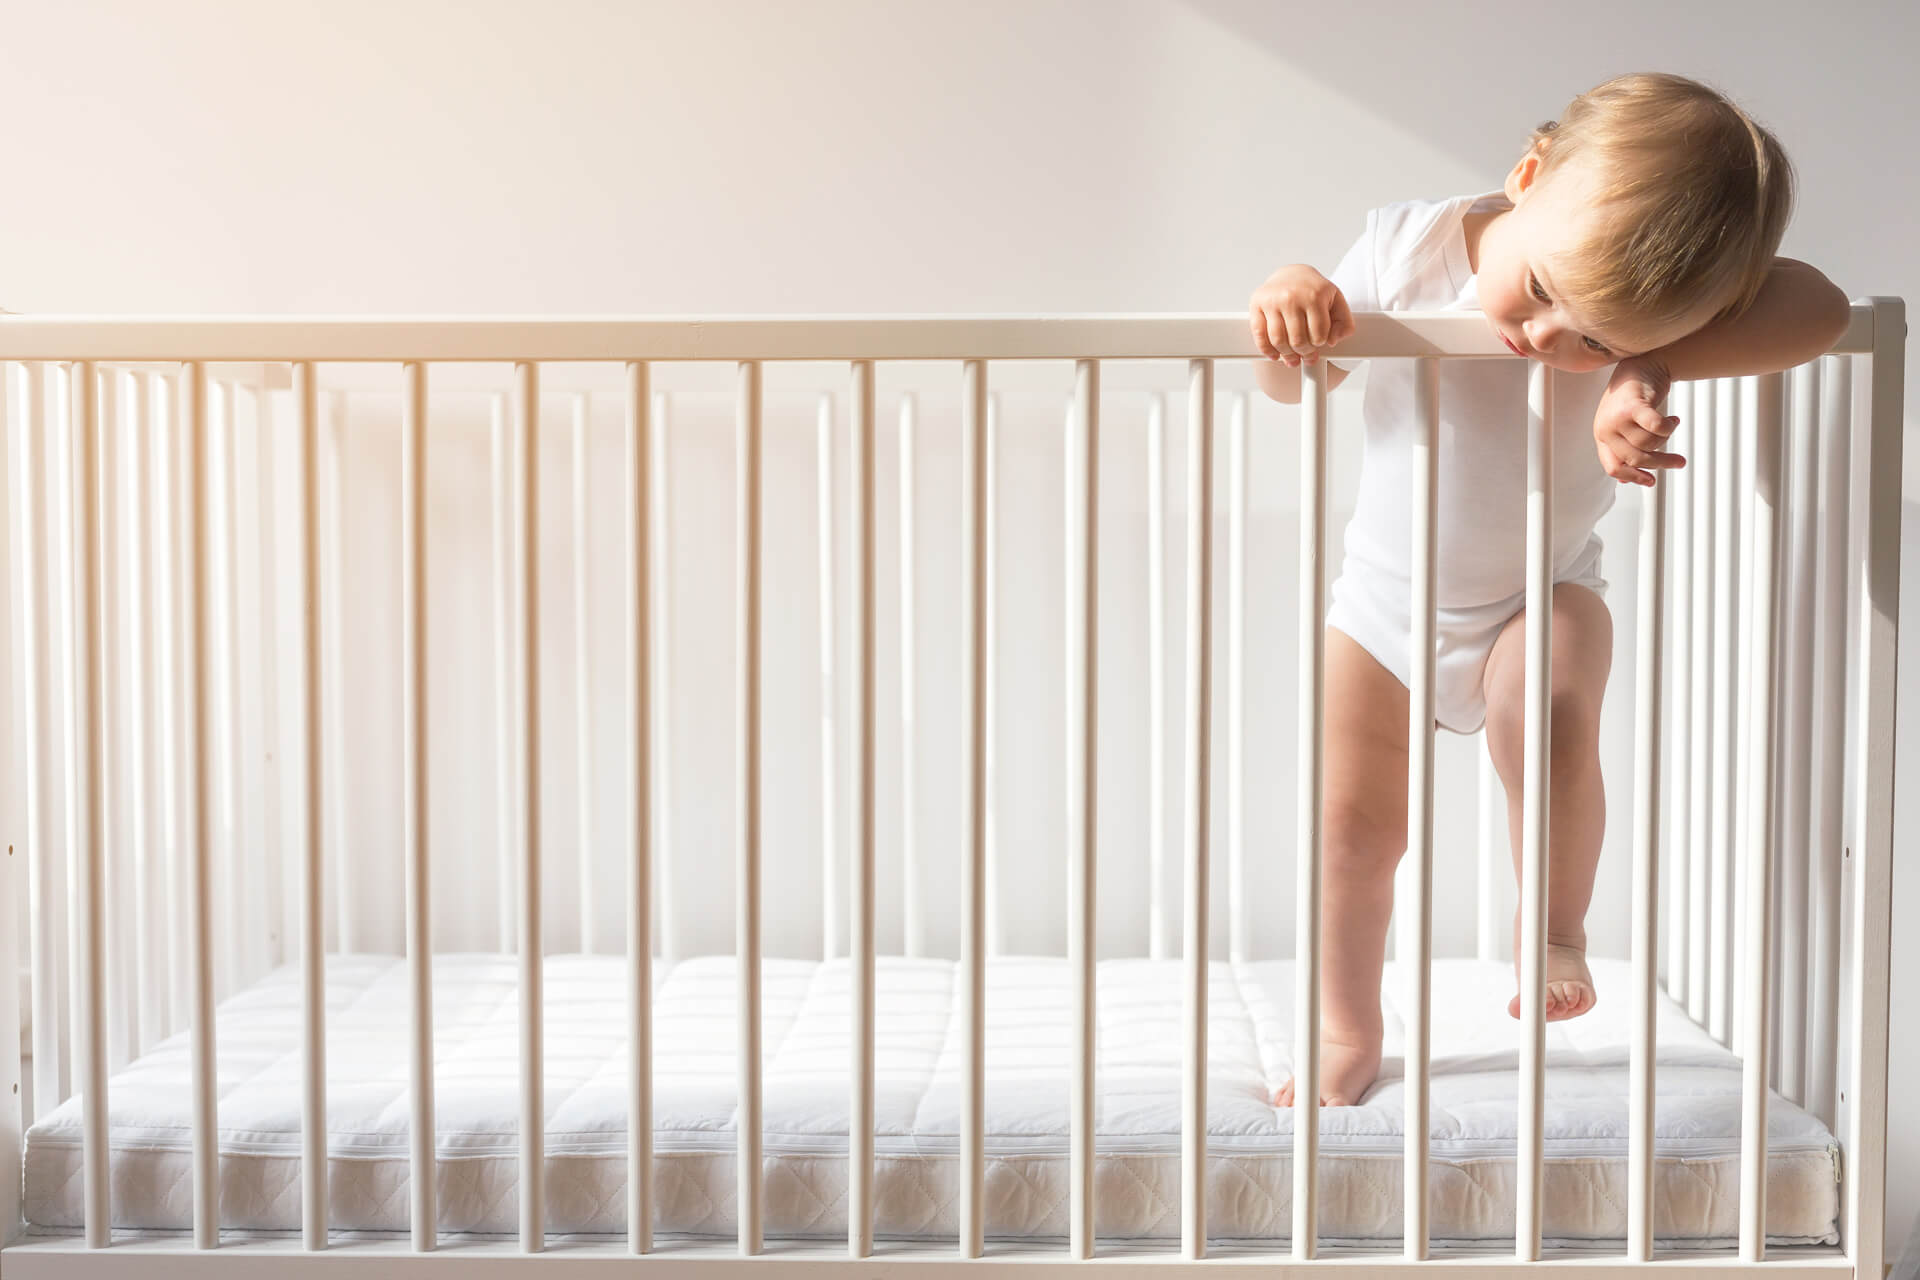 What Do You Do When You Are Done With Your Crib Mattress